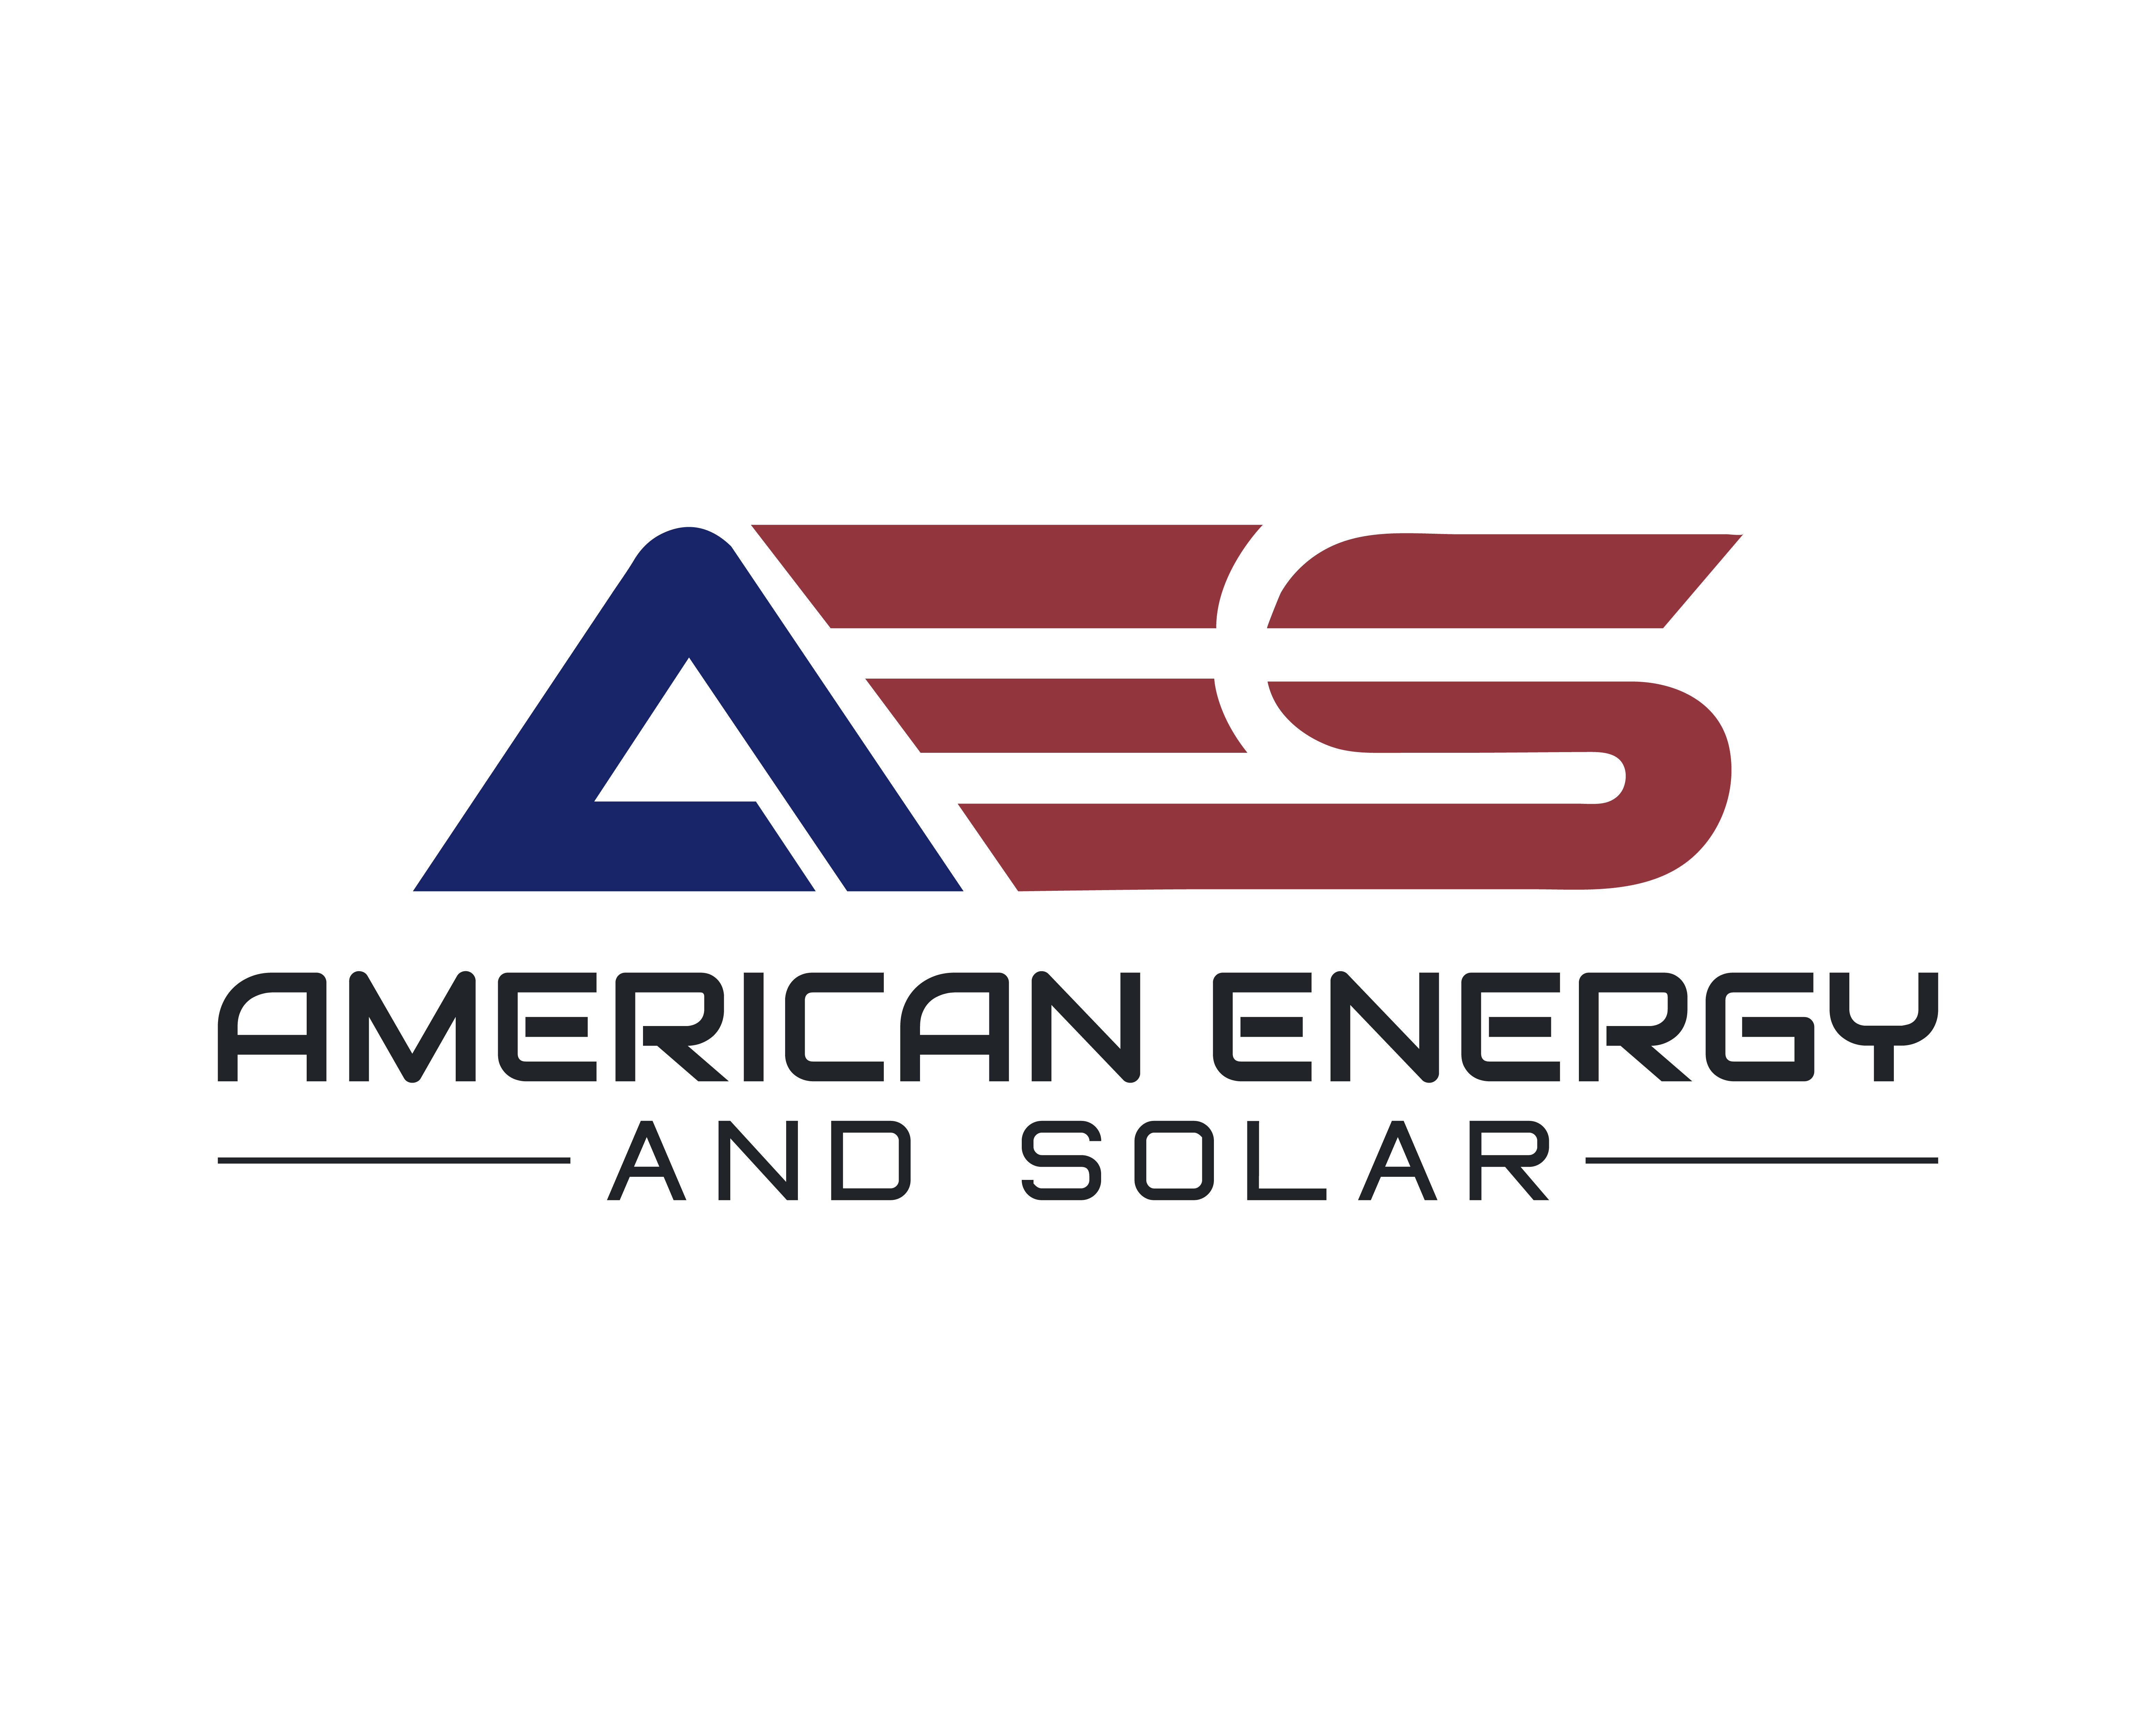 American Energy and Solar (AES)